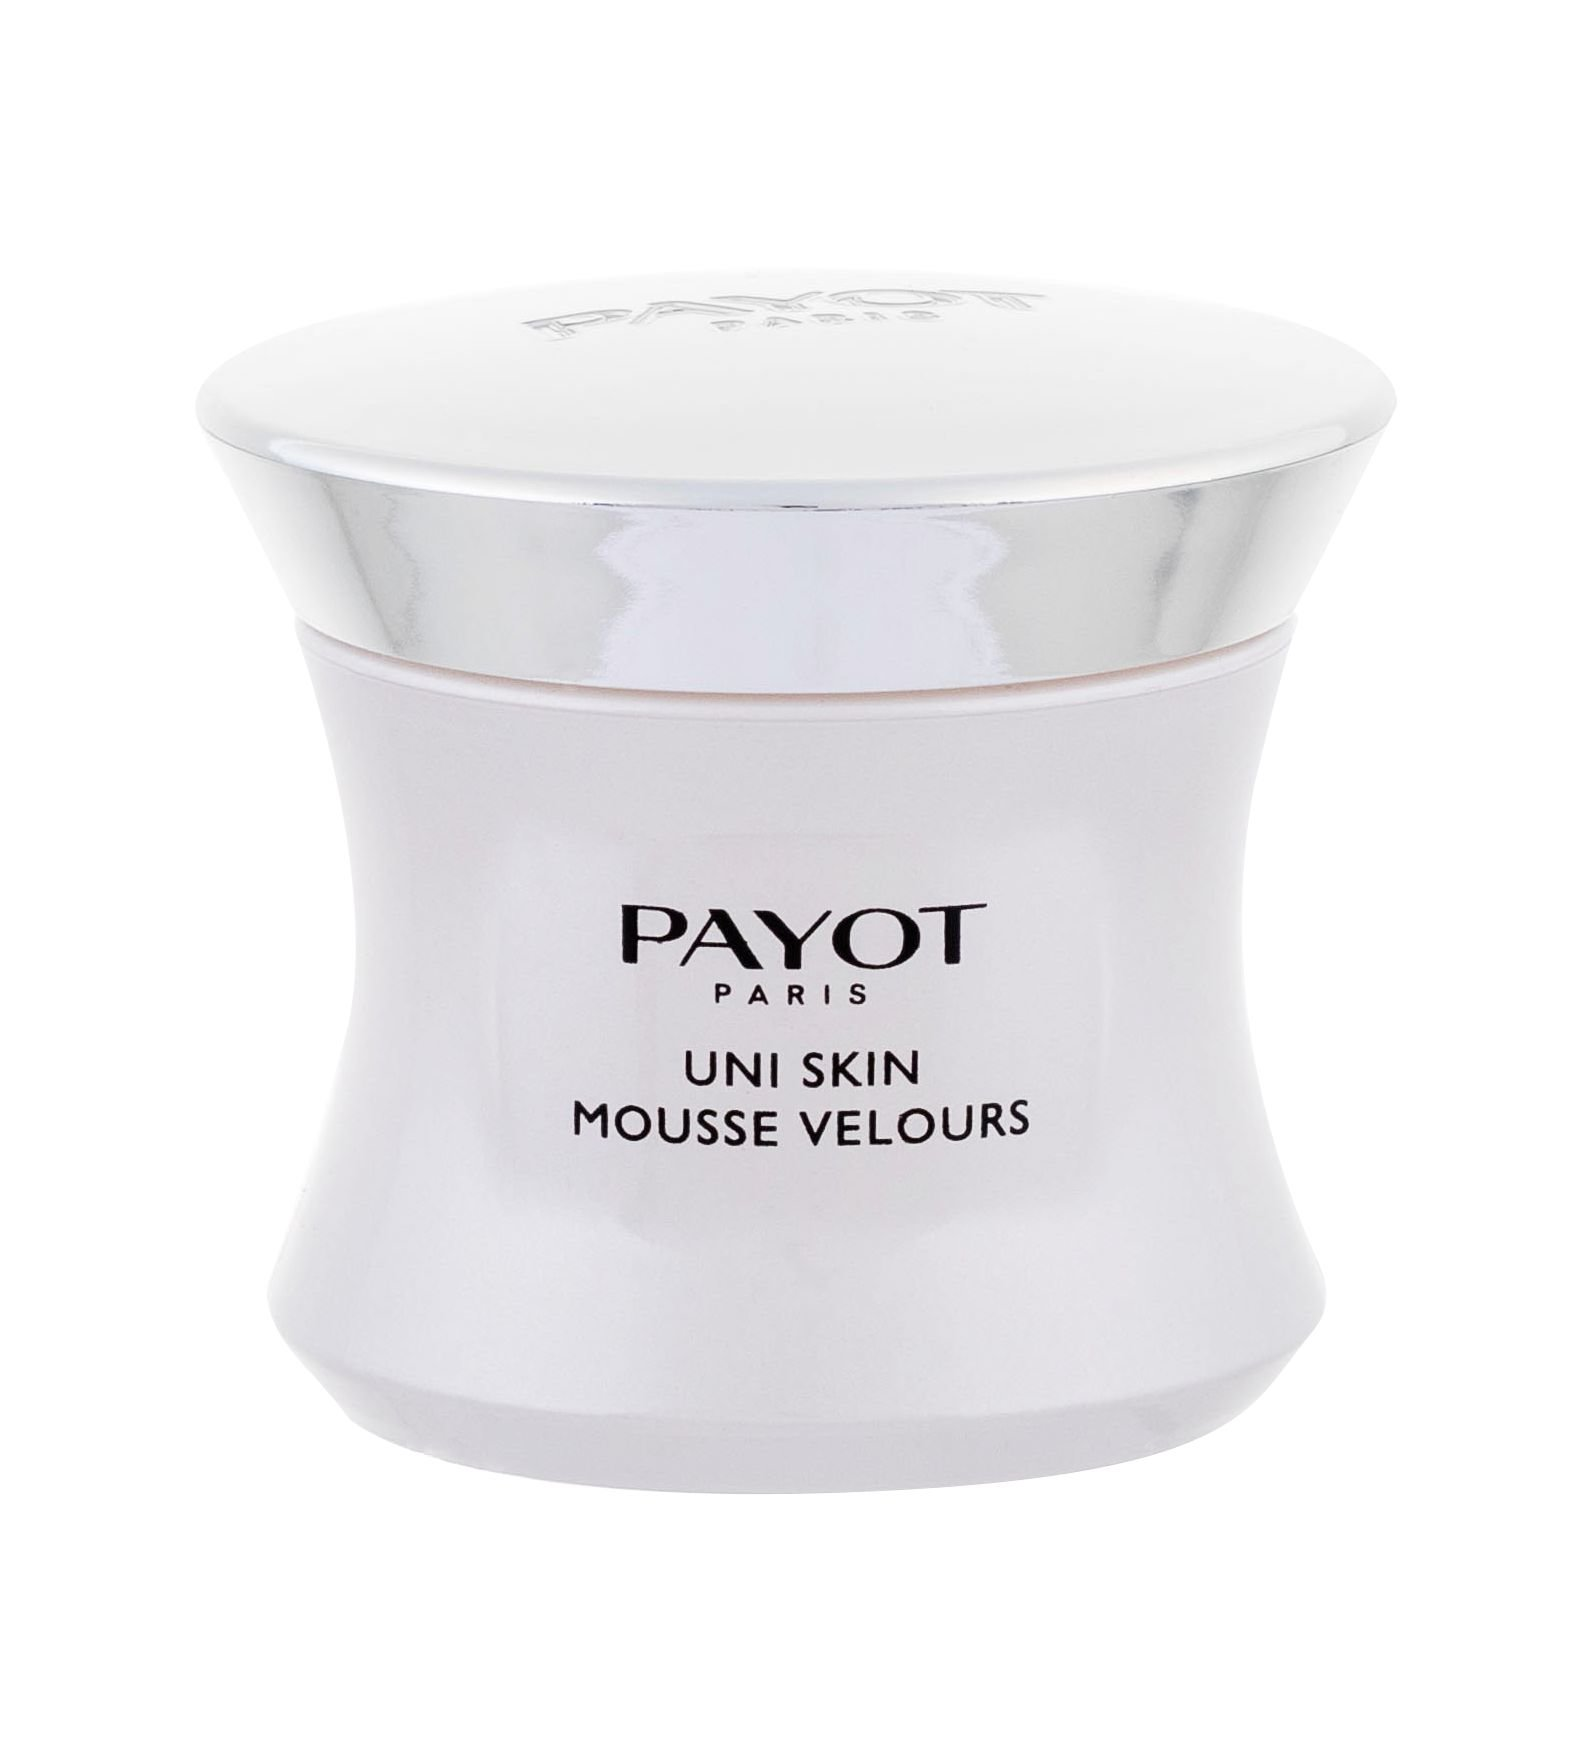 PAYOT Uni Skin Day Cream 50ml  Mousse Velours